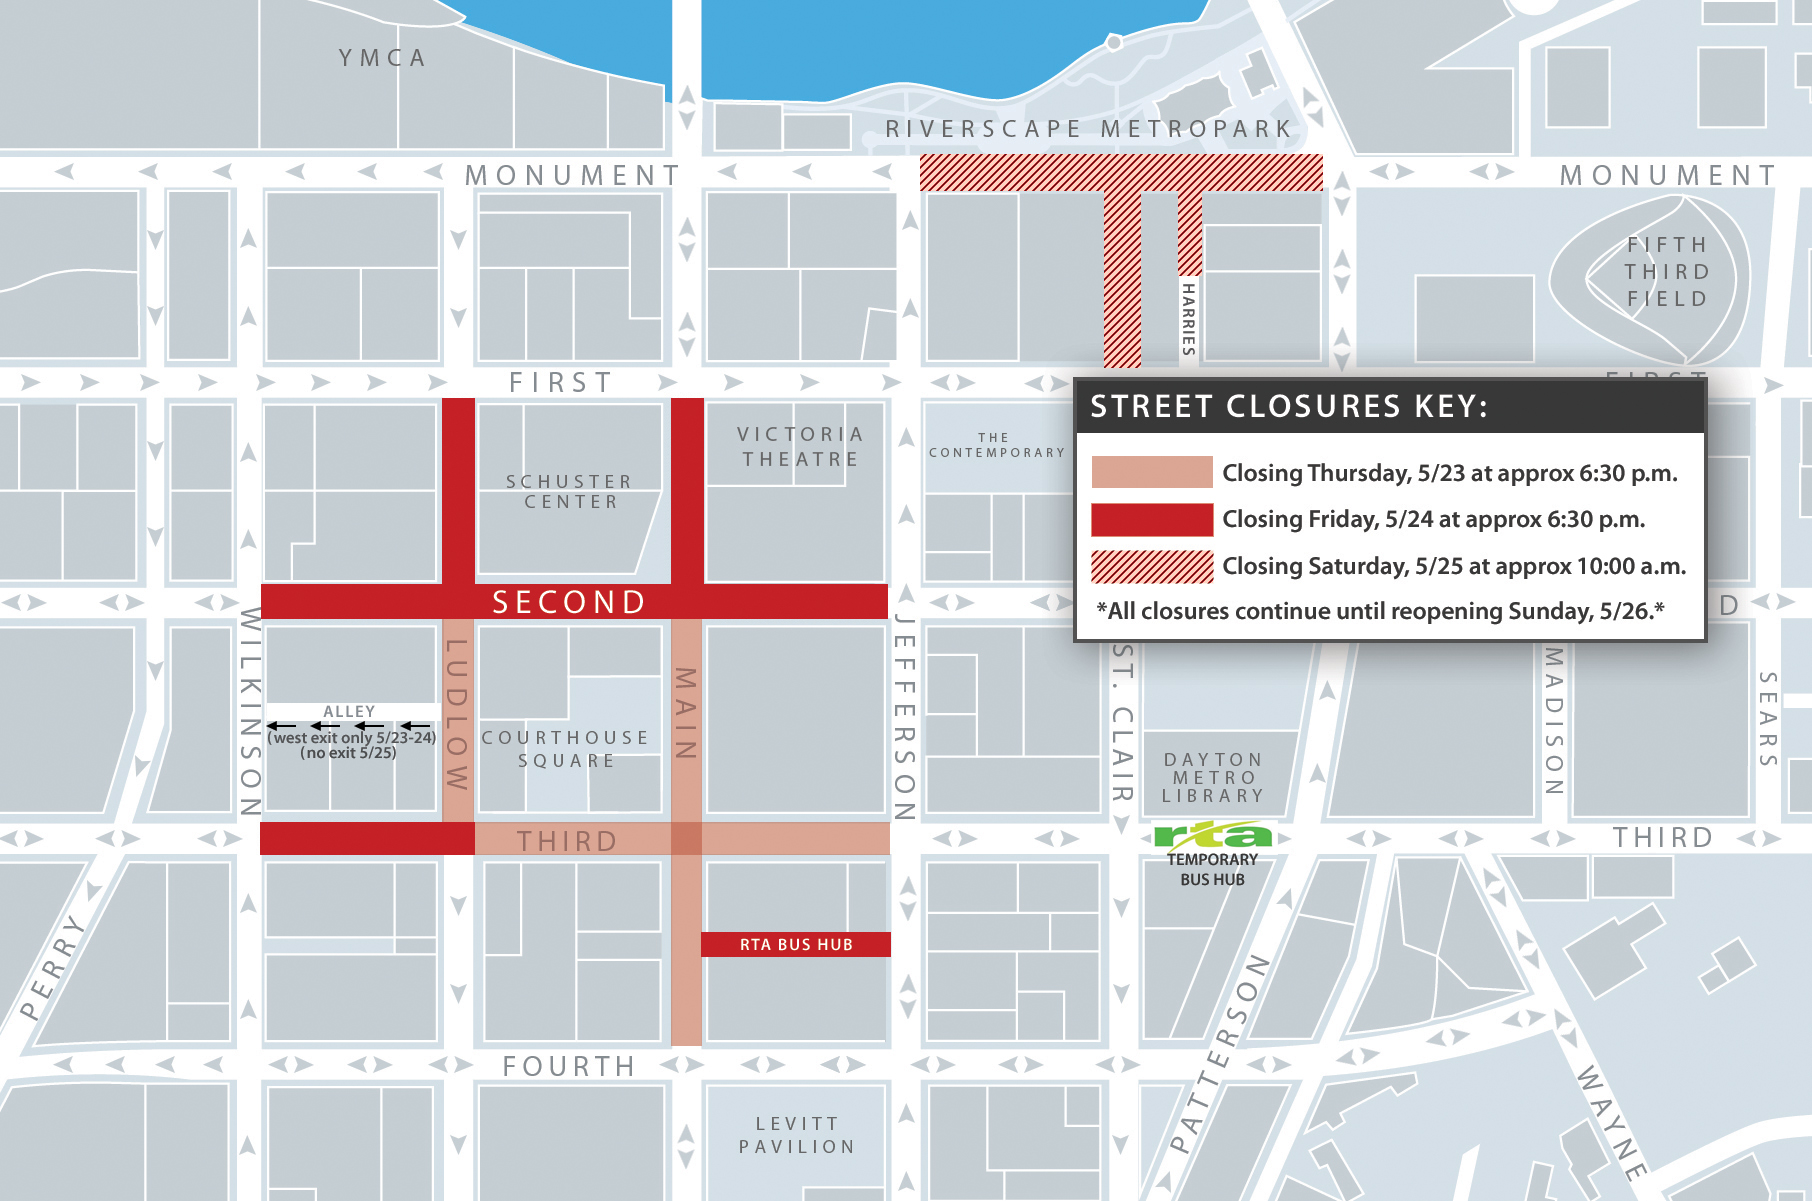 Upcoming Street Closures: Preparations for May 25 Rally | Downtown on